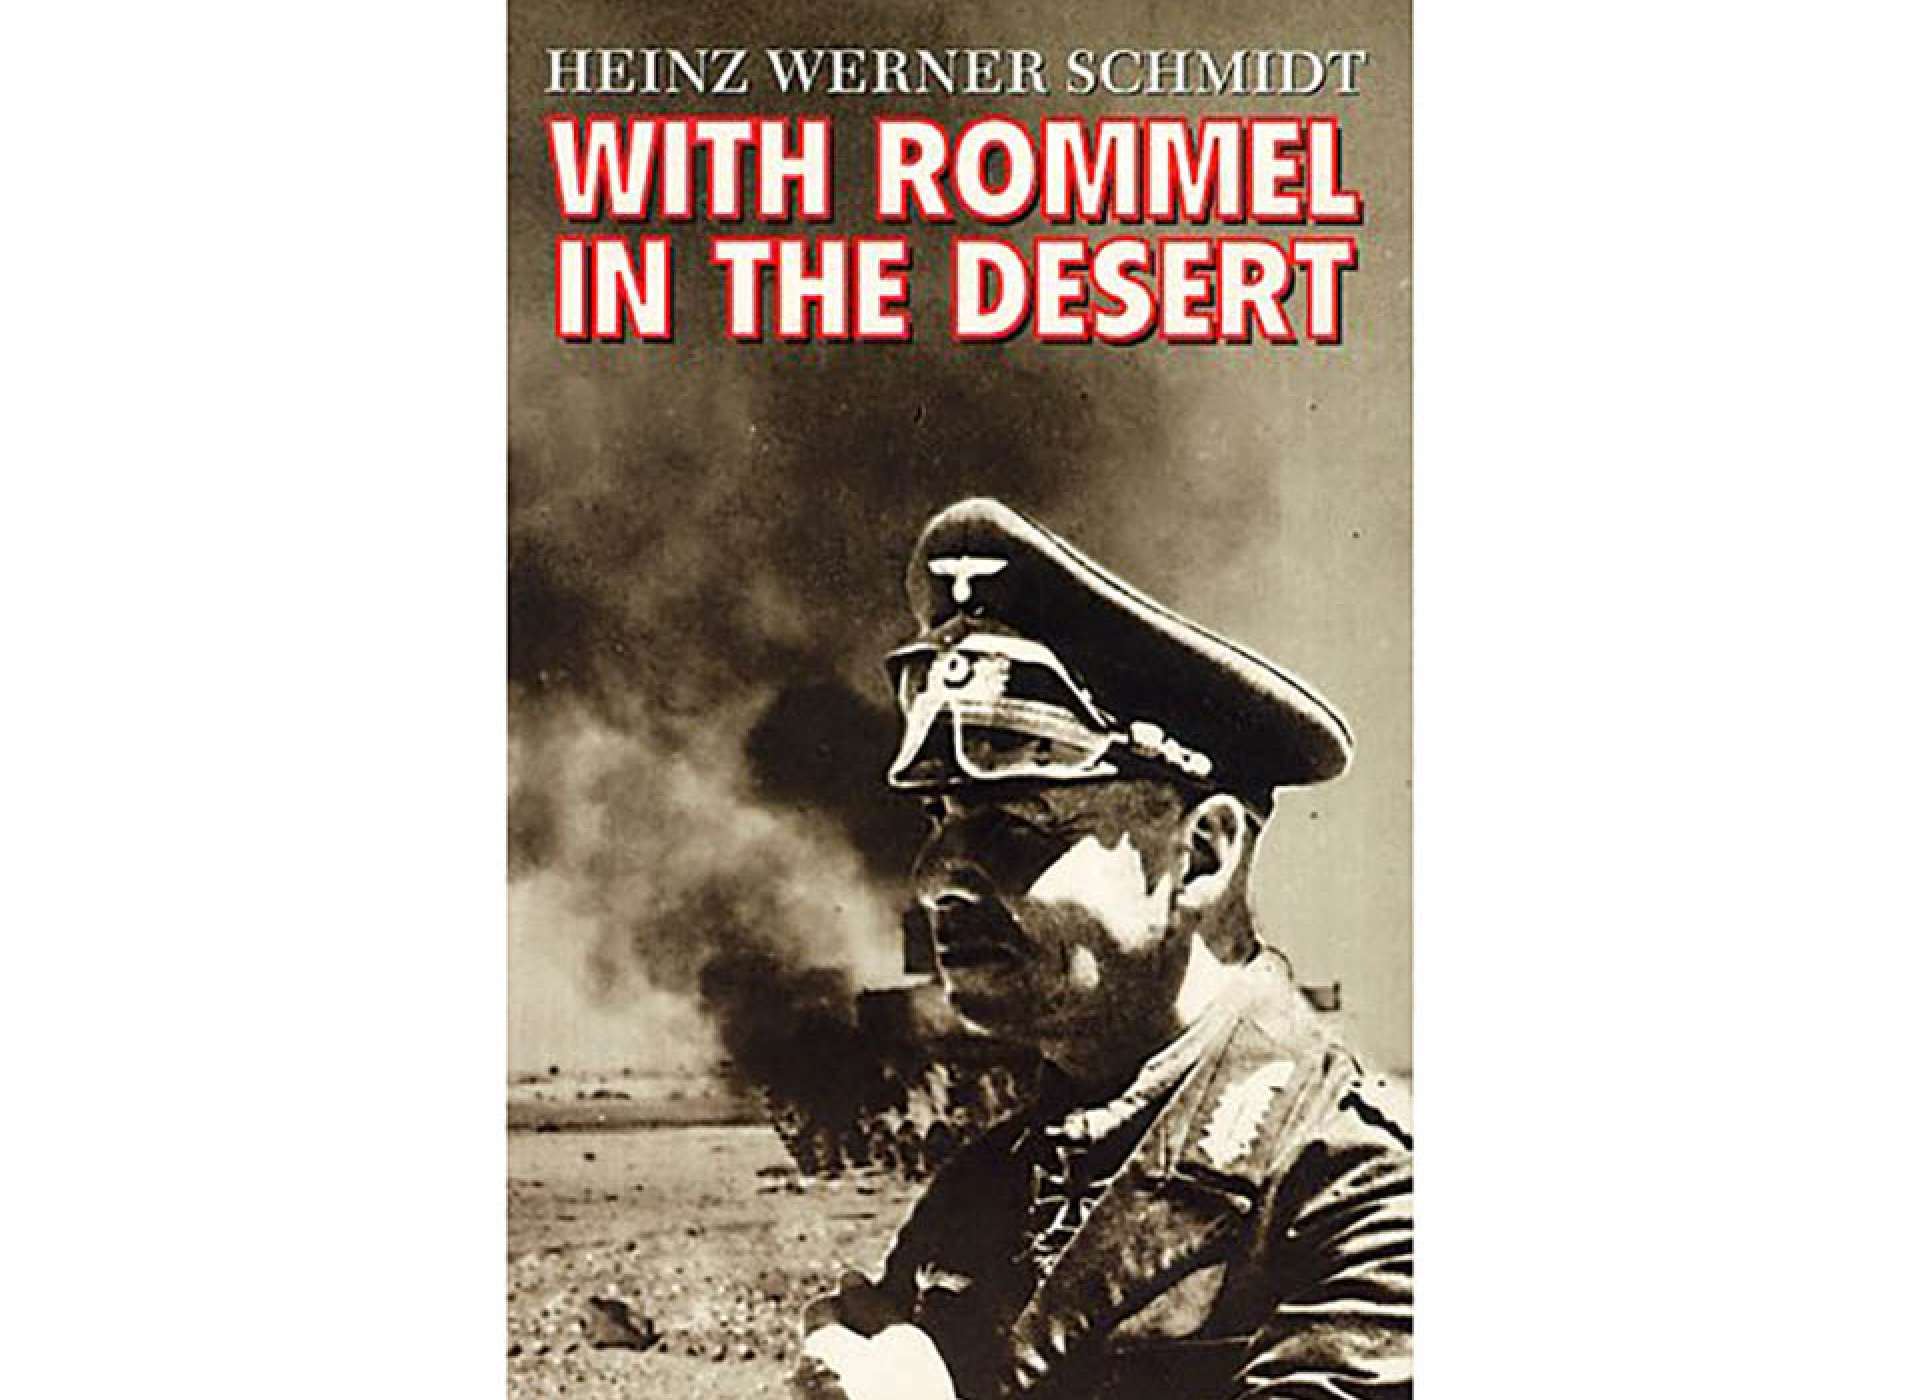 With Rommel in the Desert. Courtesy of Amazon.com